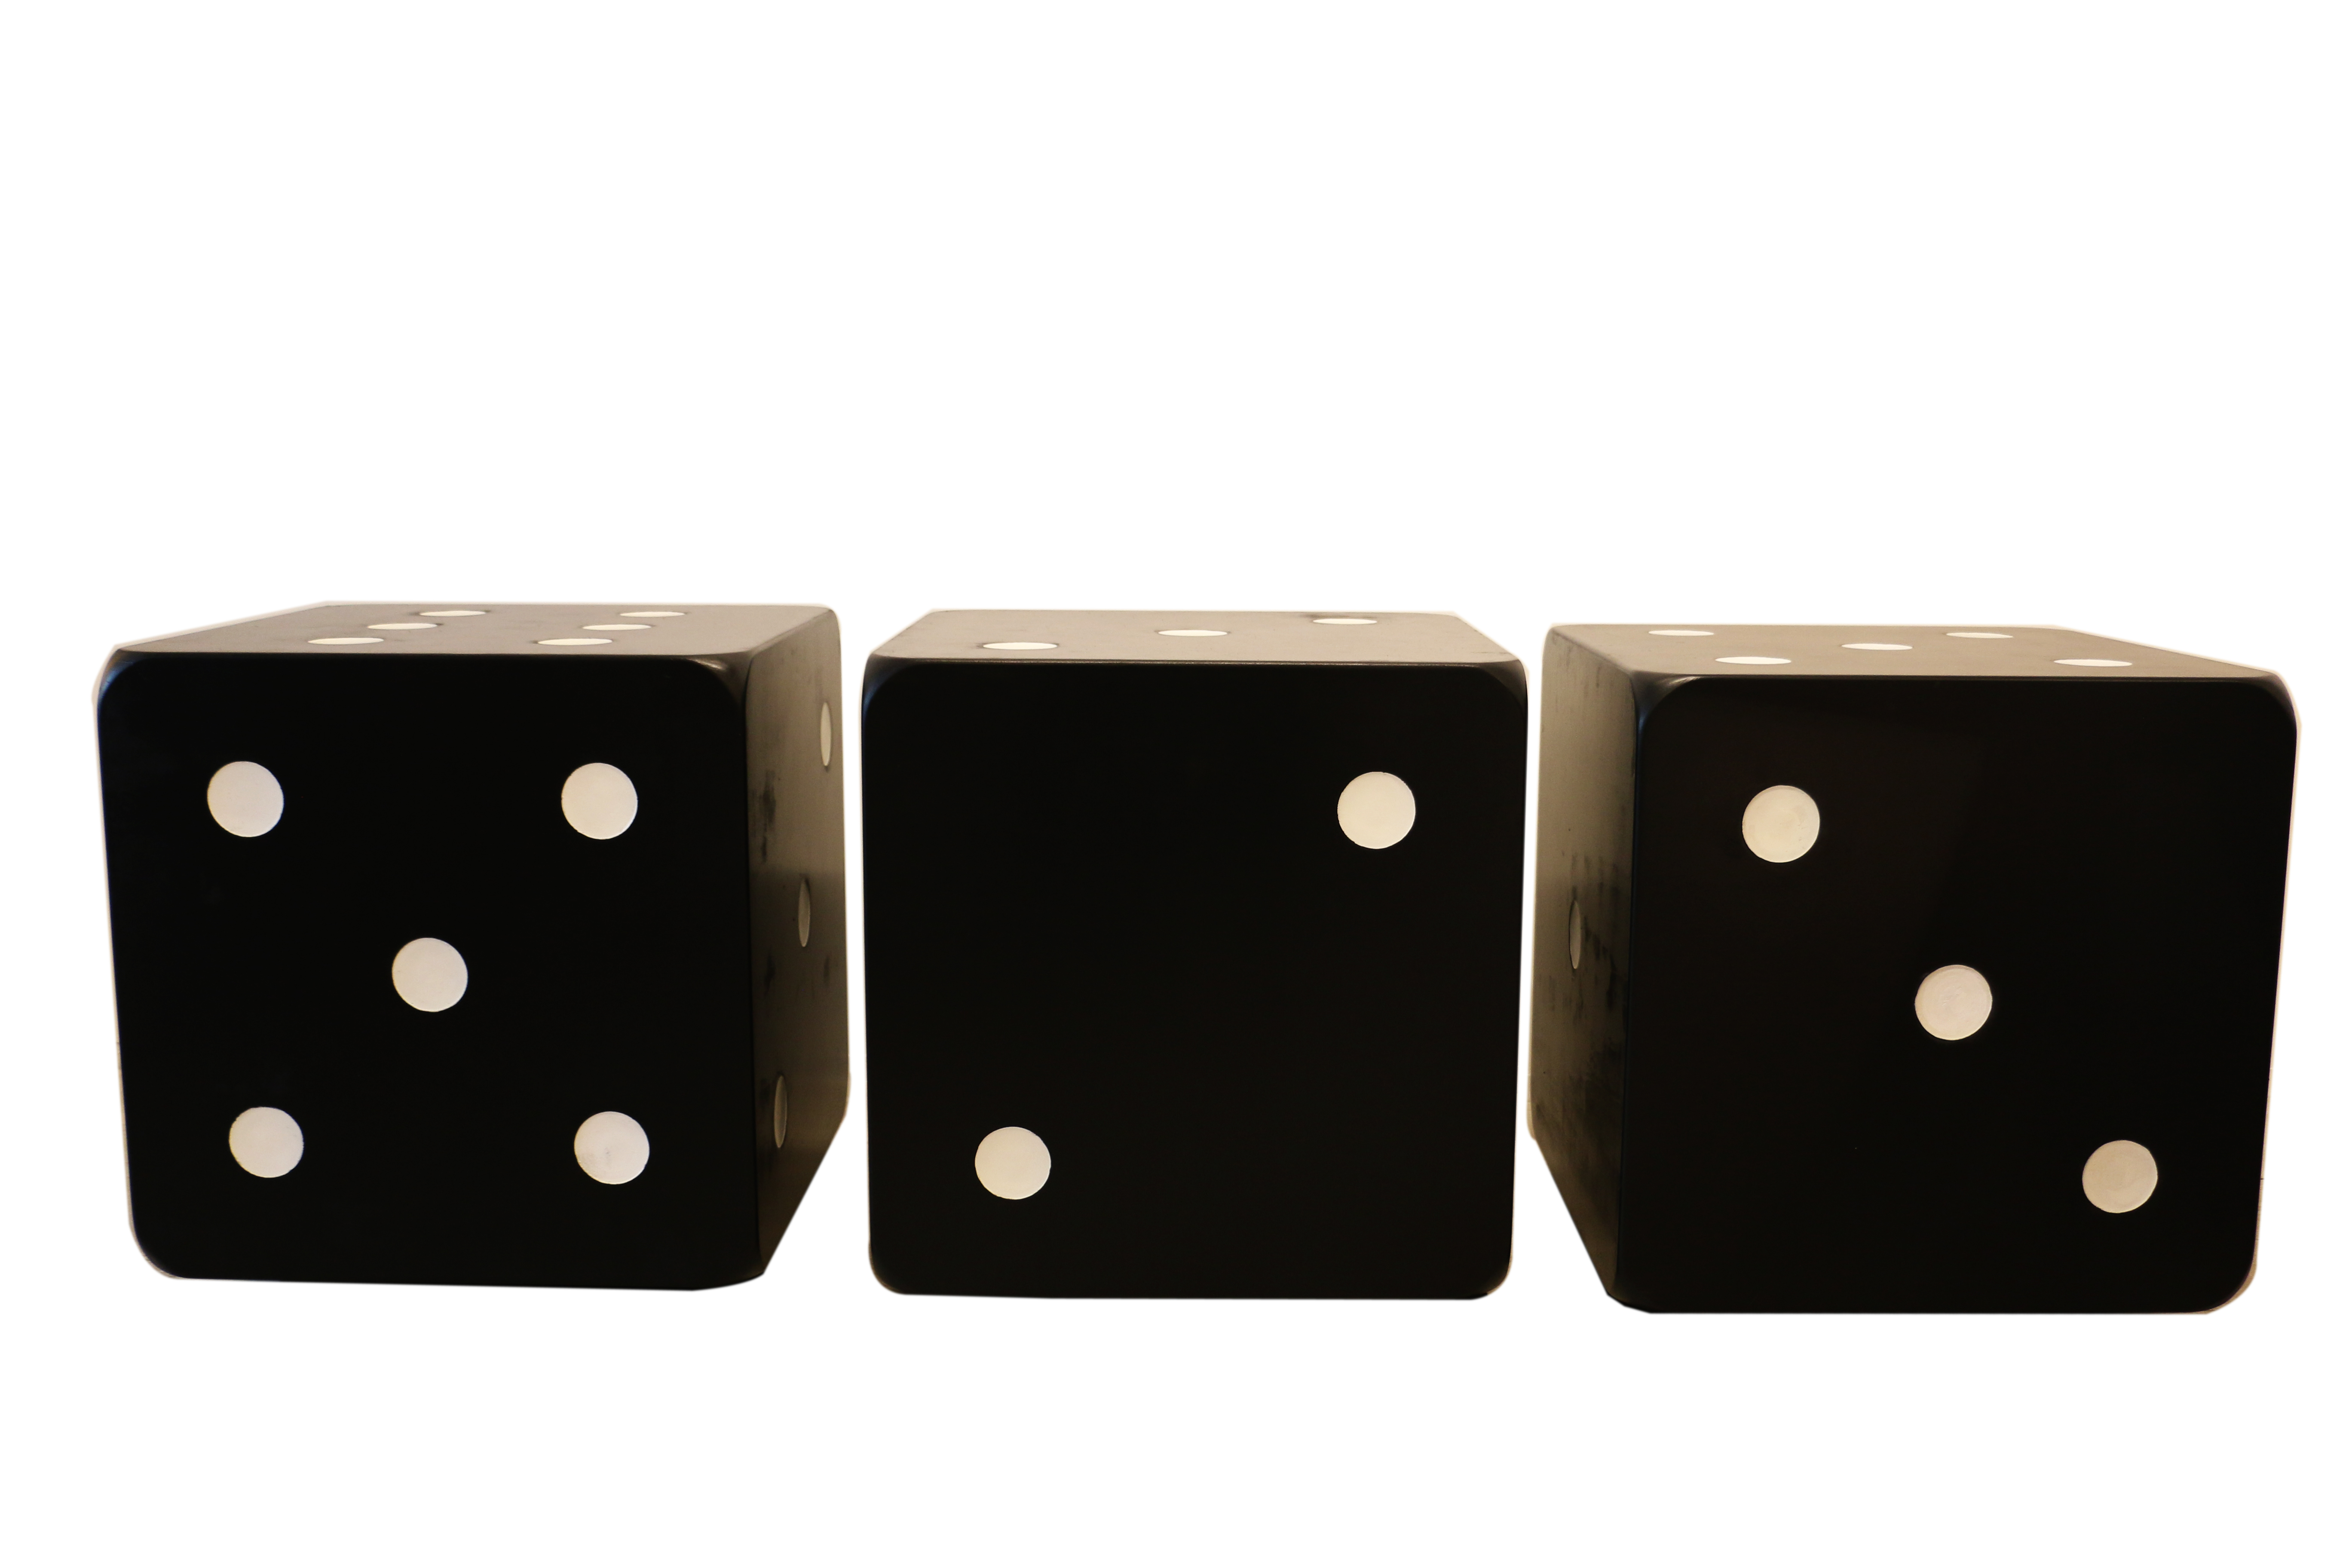 Three Pieces Of Couch Shaped Dice Circa 1970 Paul Bert